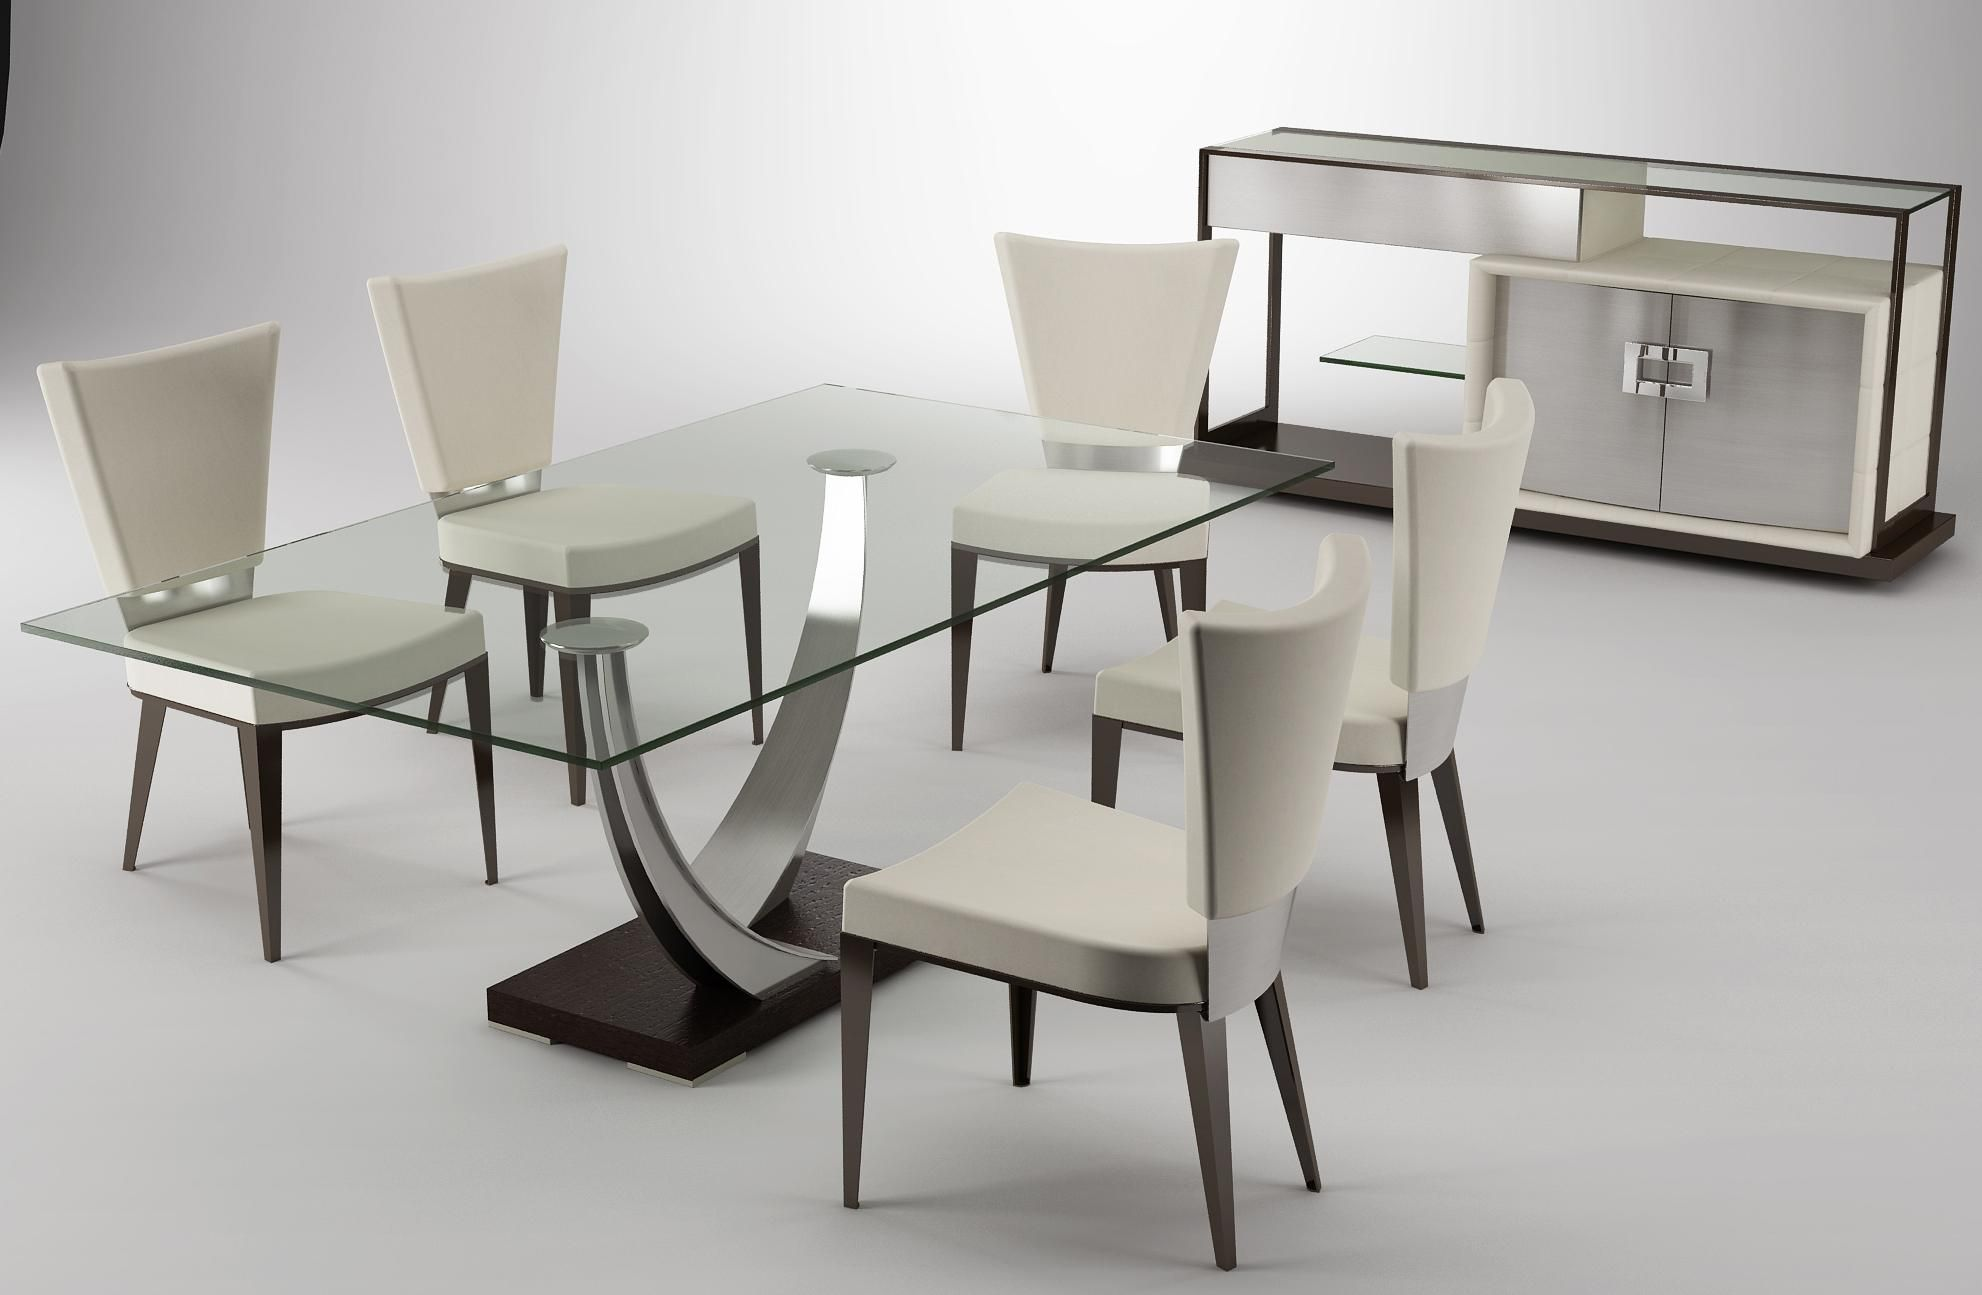 Amazing modern stylish dining room table set designs elite for Dining table compact designs